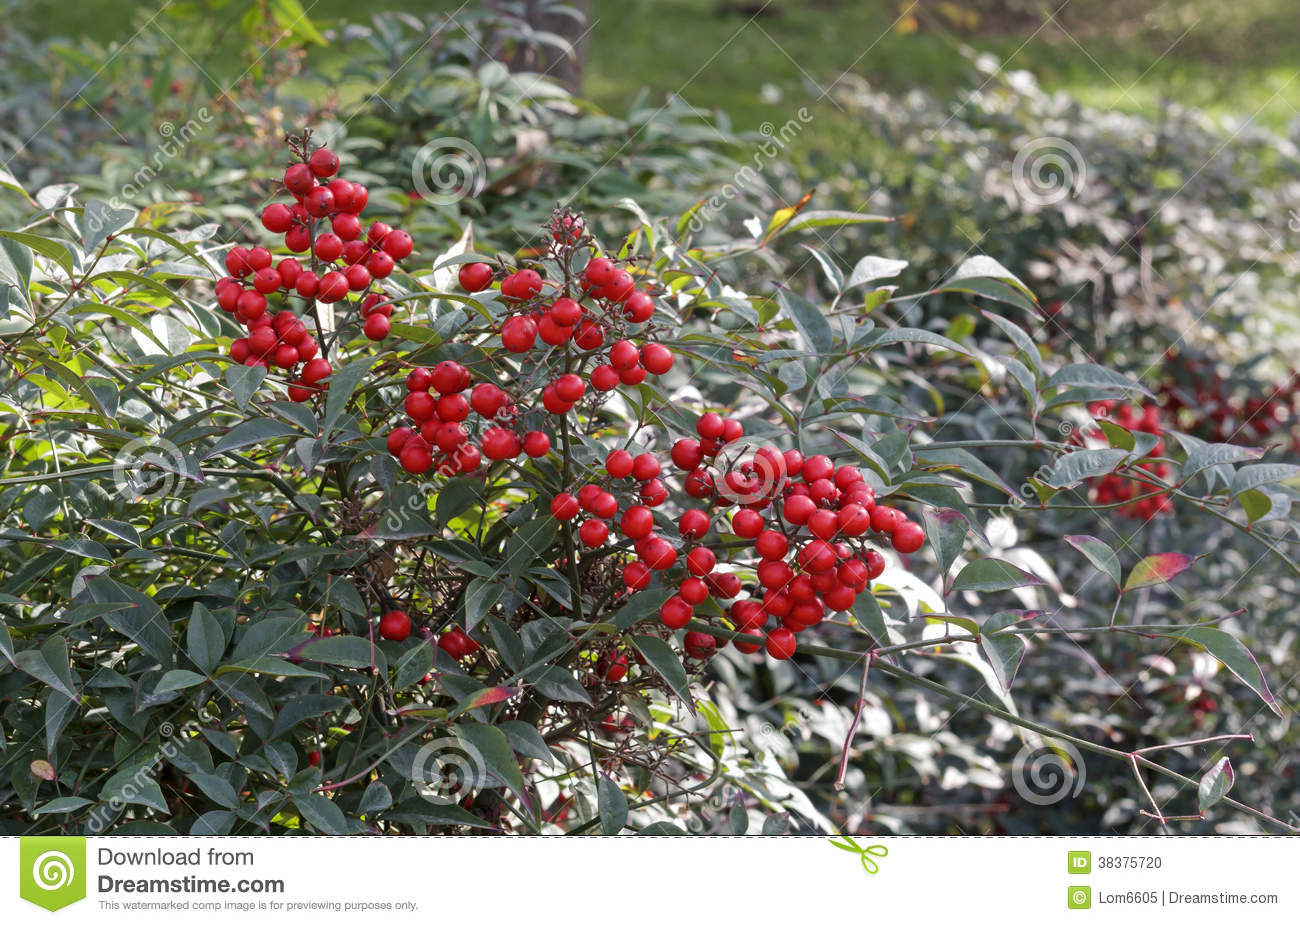 Plant Met Rode Bessen Shrub With Red Berries Stock Photo Image 38375720